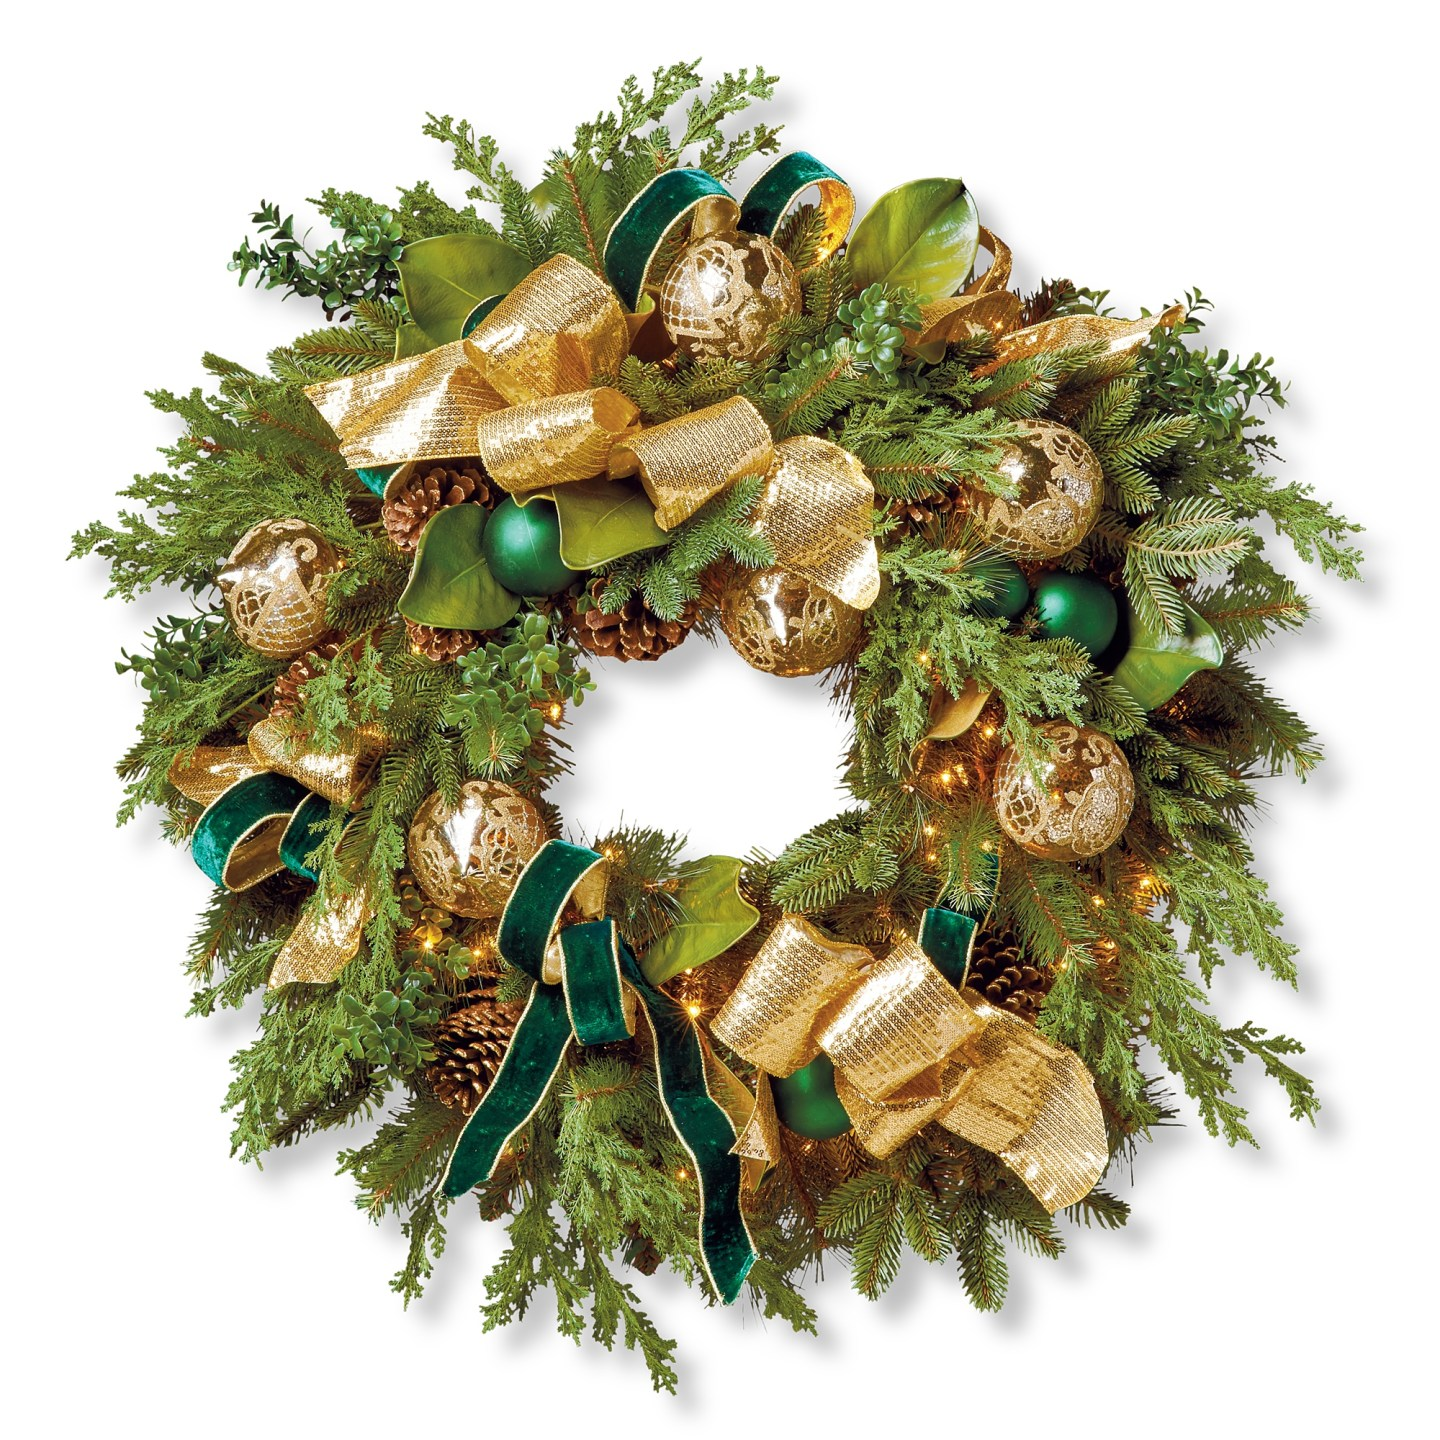 Cumberland-9 Green and Gold Holiday Decor We Love!